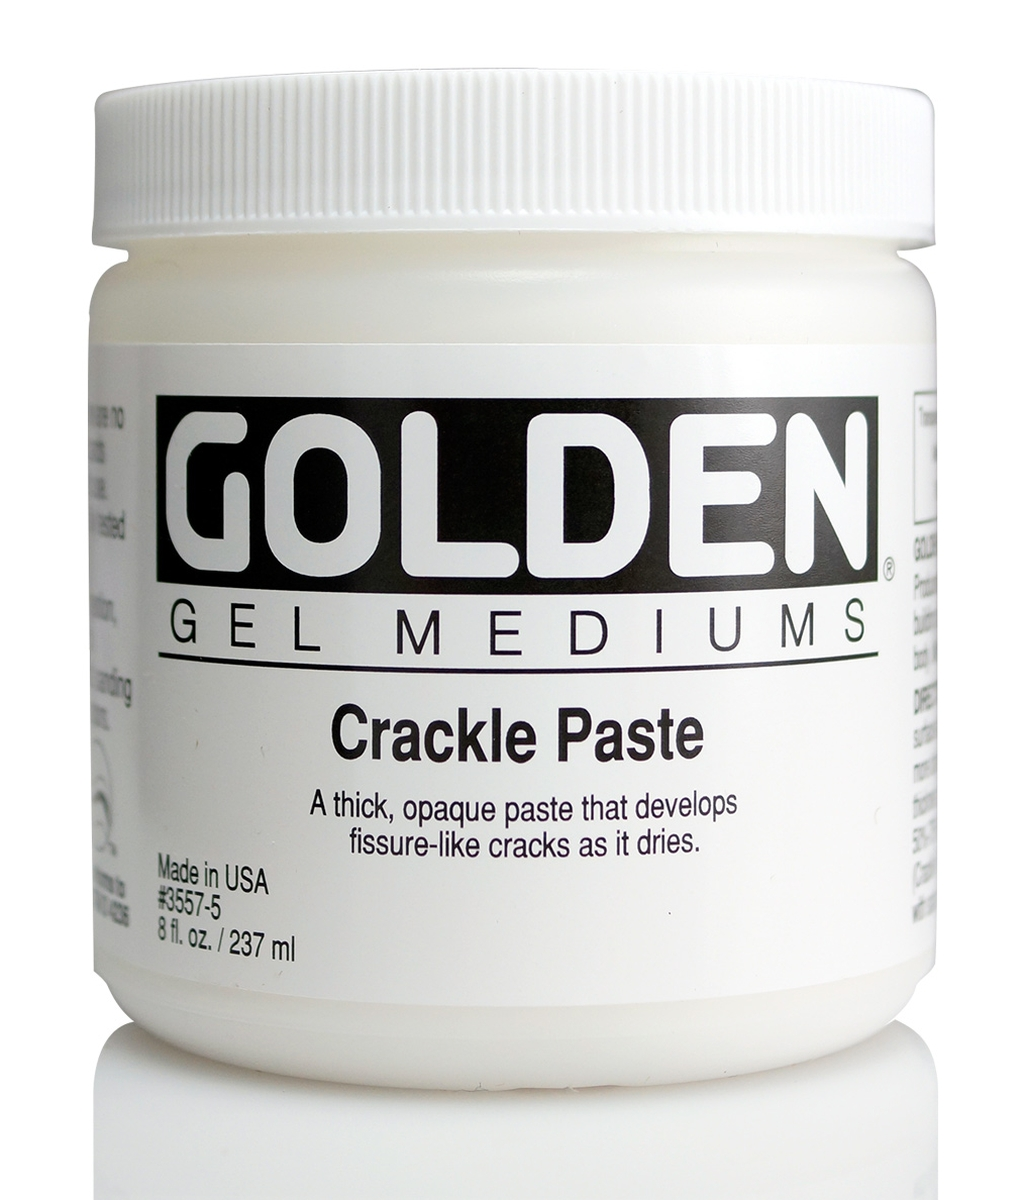 Golden Crackle Paste 237 ml Dose